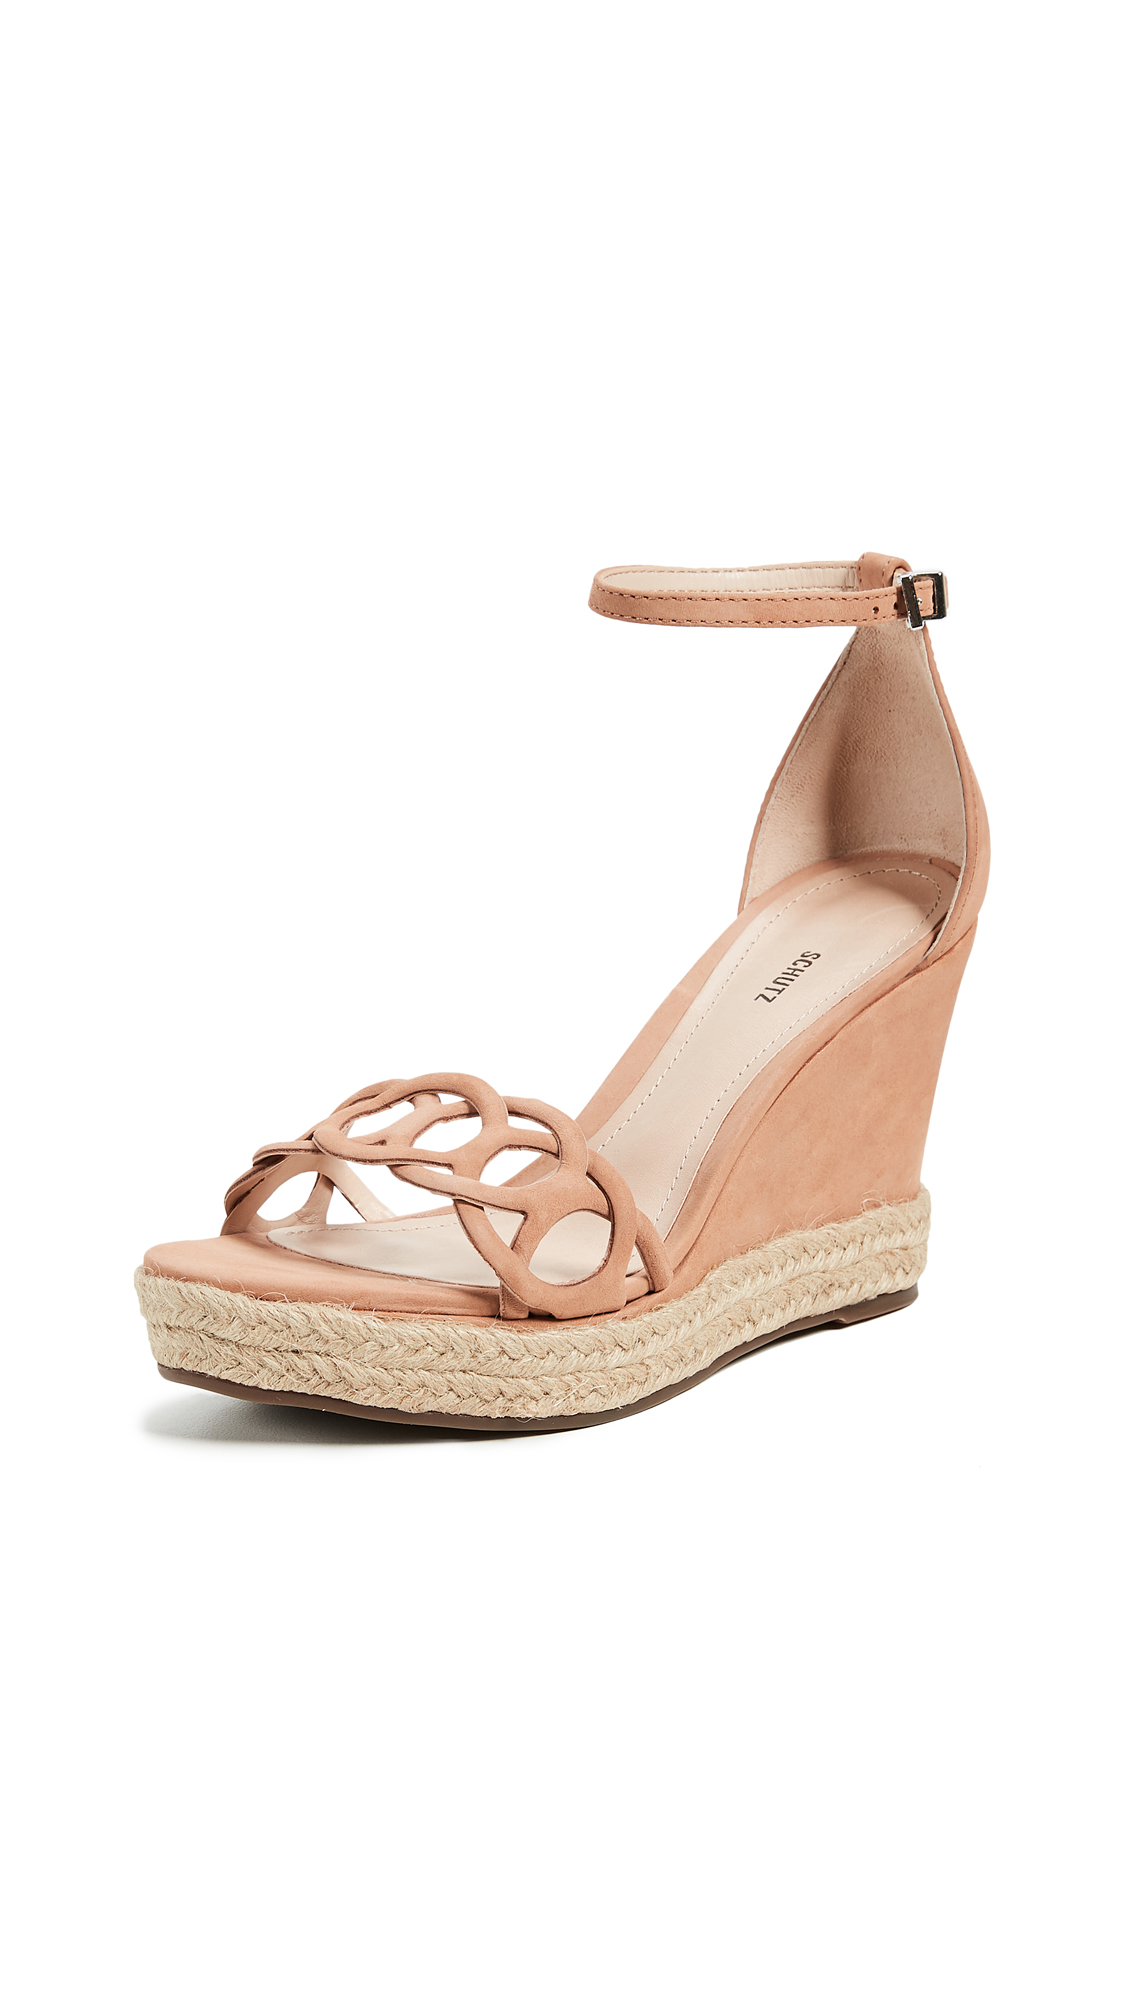 Schutz Keira Wedge Sandals - Toasted Nut